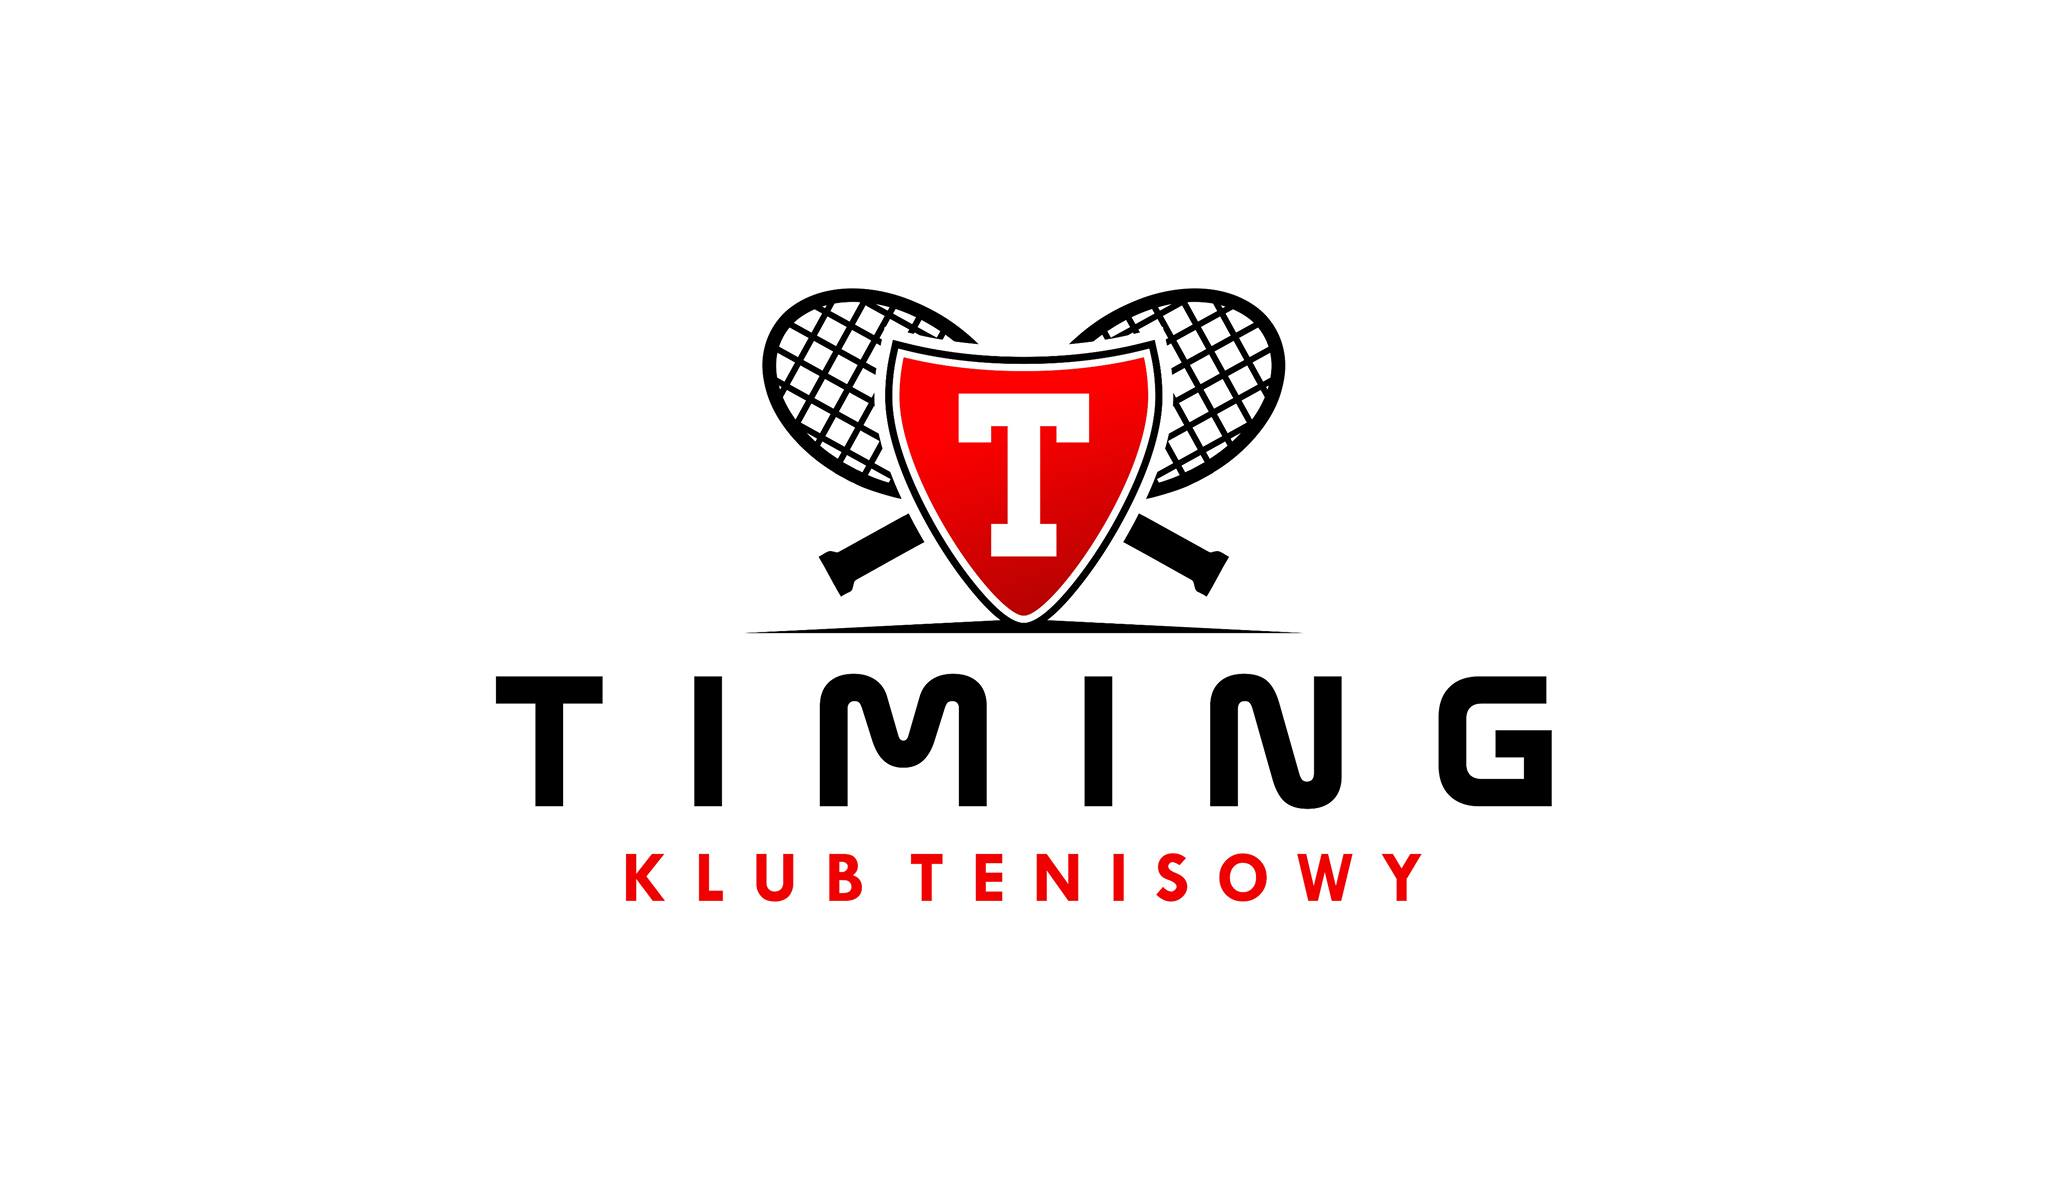 TIMING klub tenisowy